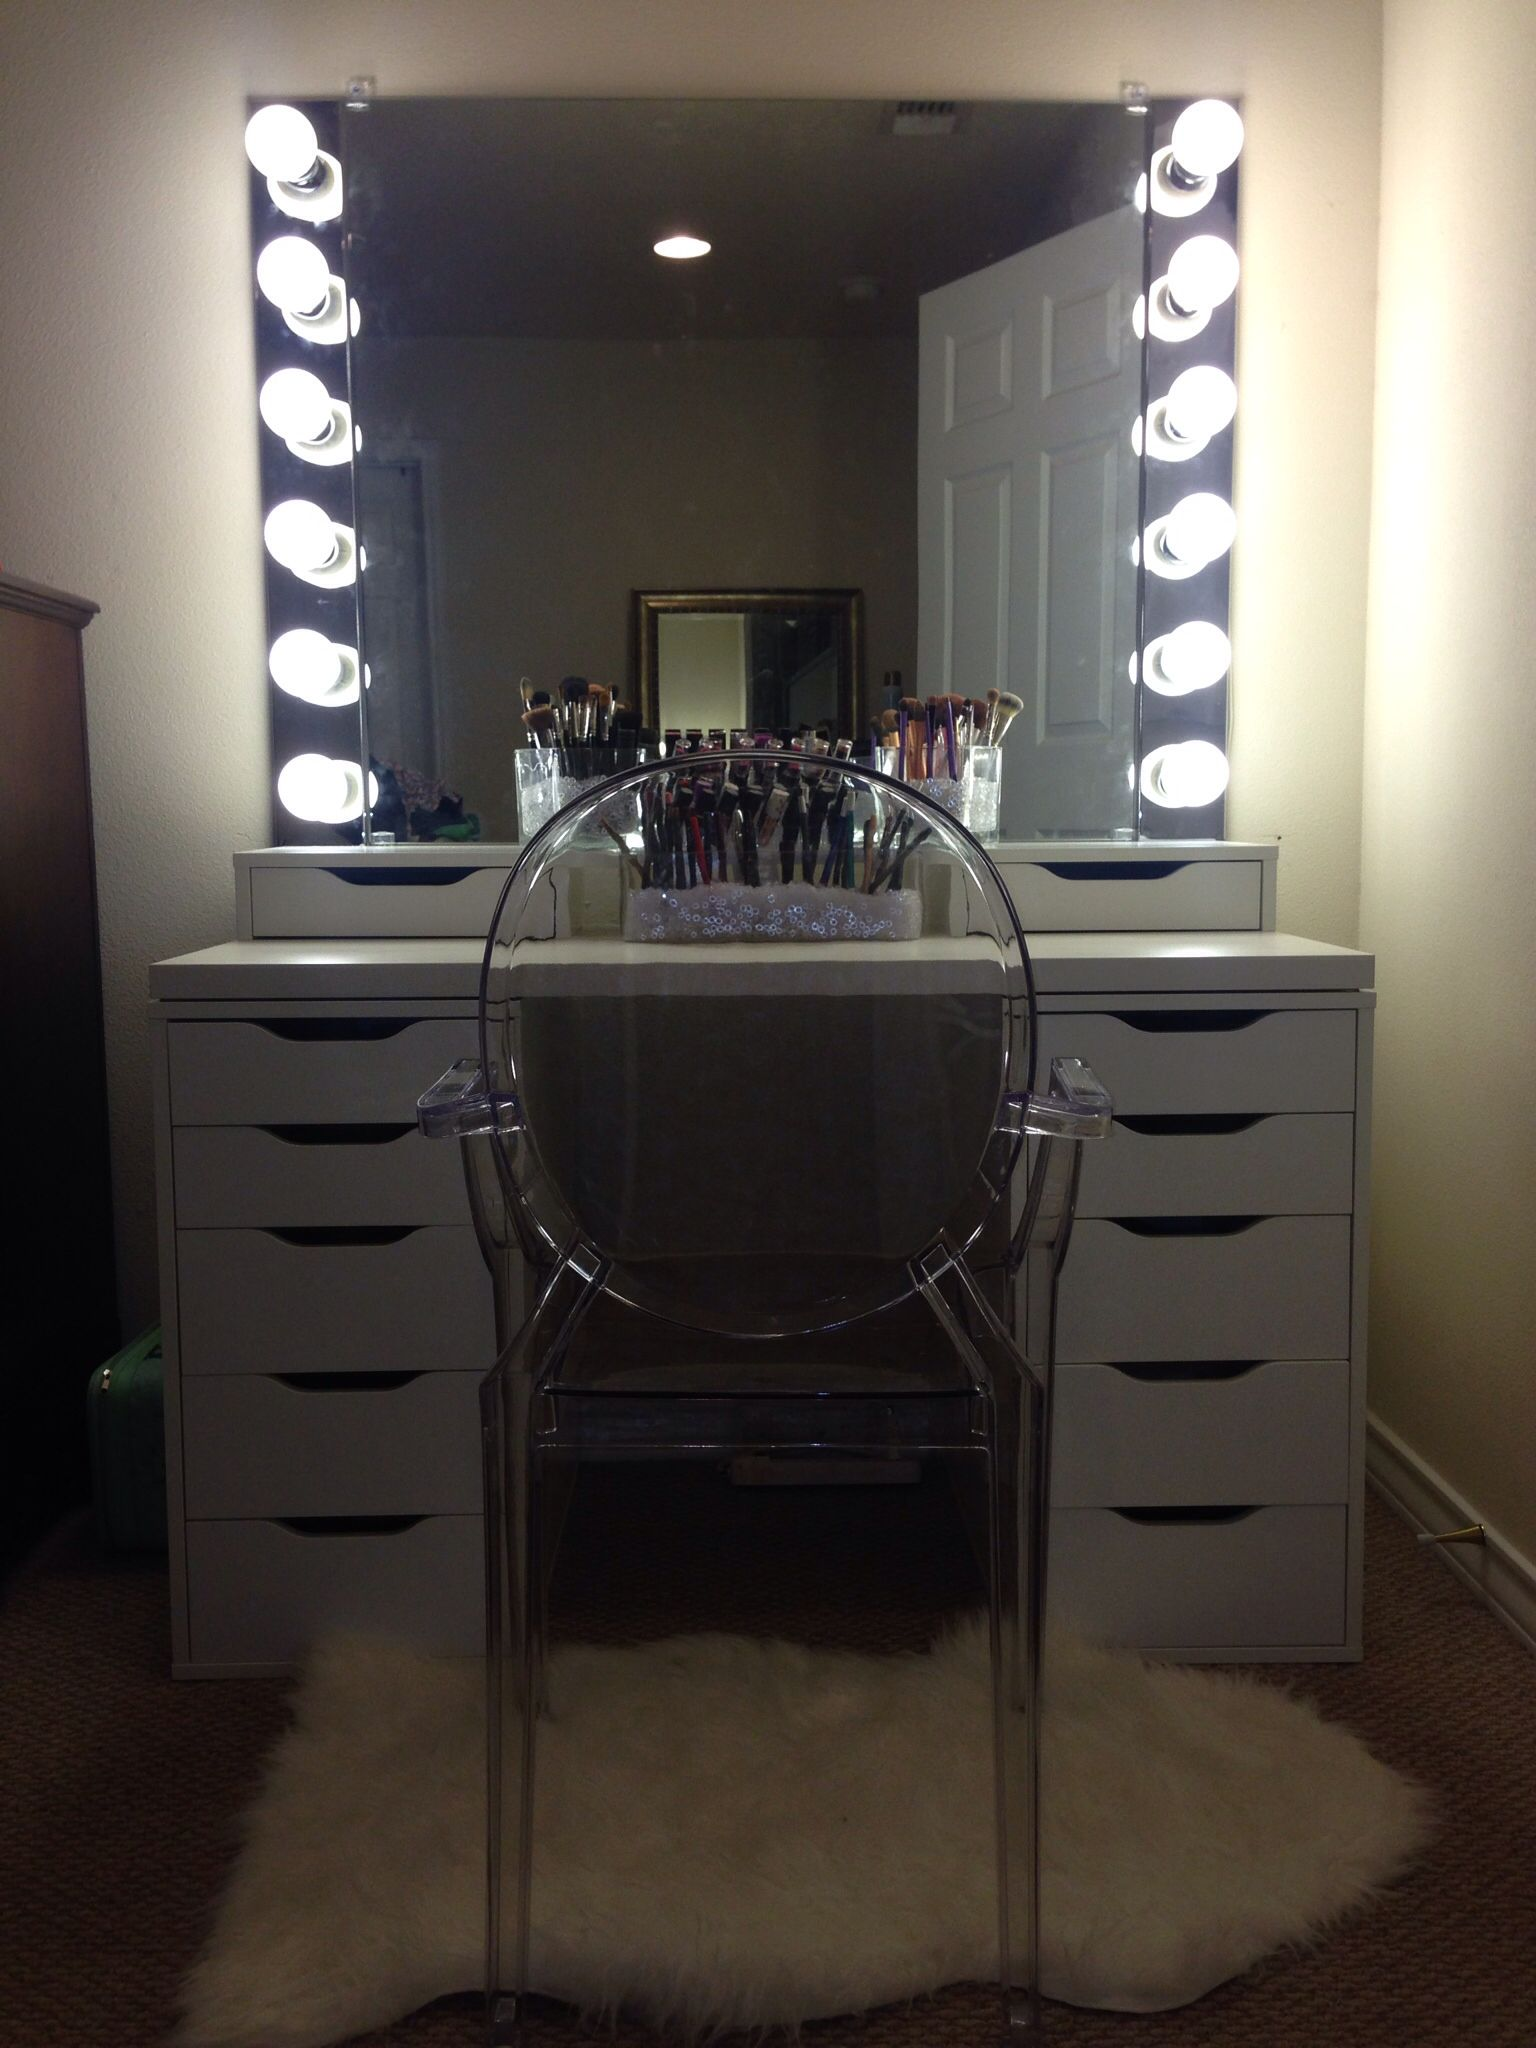 Elegant Hollywood Vanity Mirror With Lights, Makeup Vanity Mirror With Lights,  Vanity Mirror With Lights Ikea, Lighted Makeup Mirror, #Hollywood #Lights # Vanity